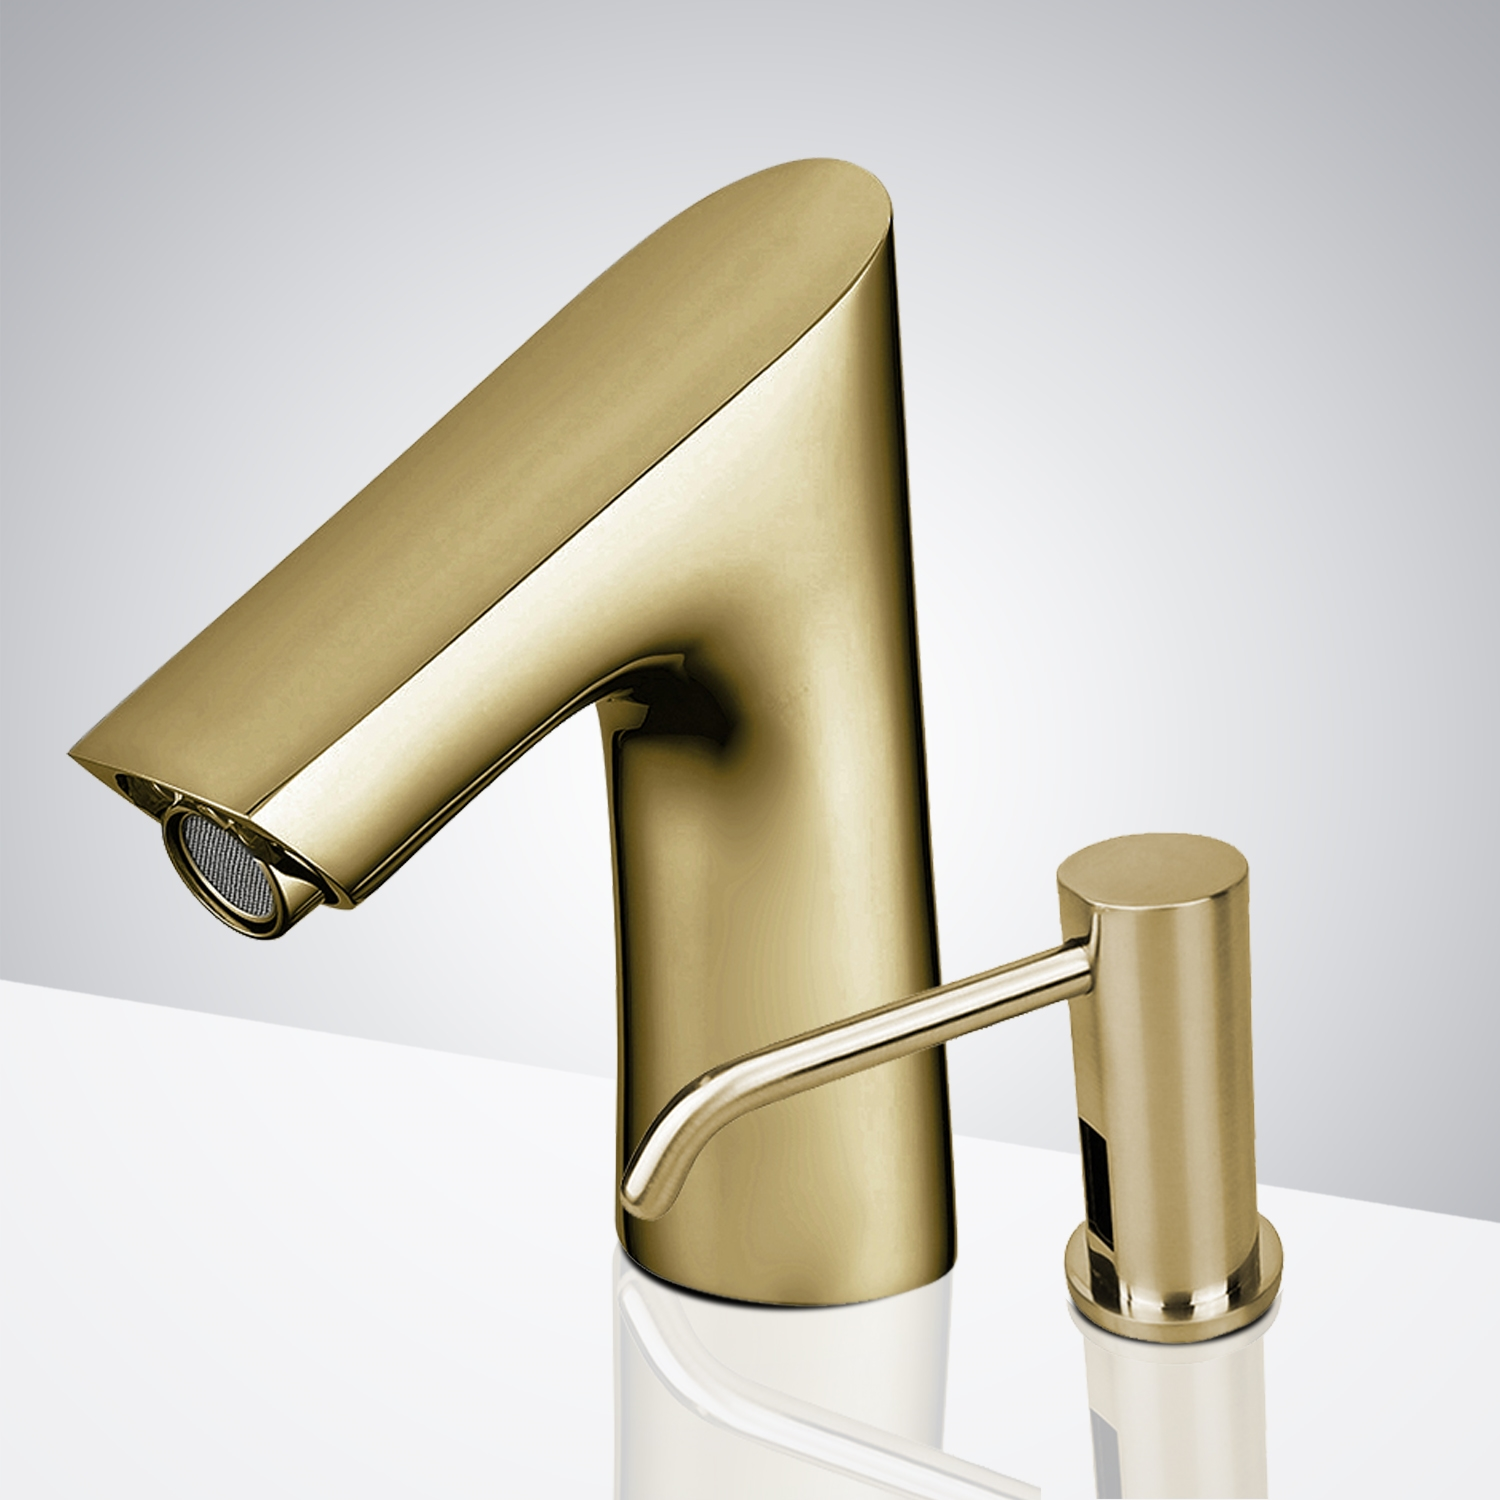 Fontana Geneva Motion Sensor Faucet & Automatic Soap Dispenser for Restrooms in Brushed Gold Finish